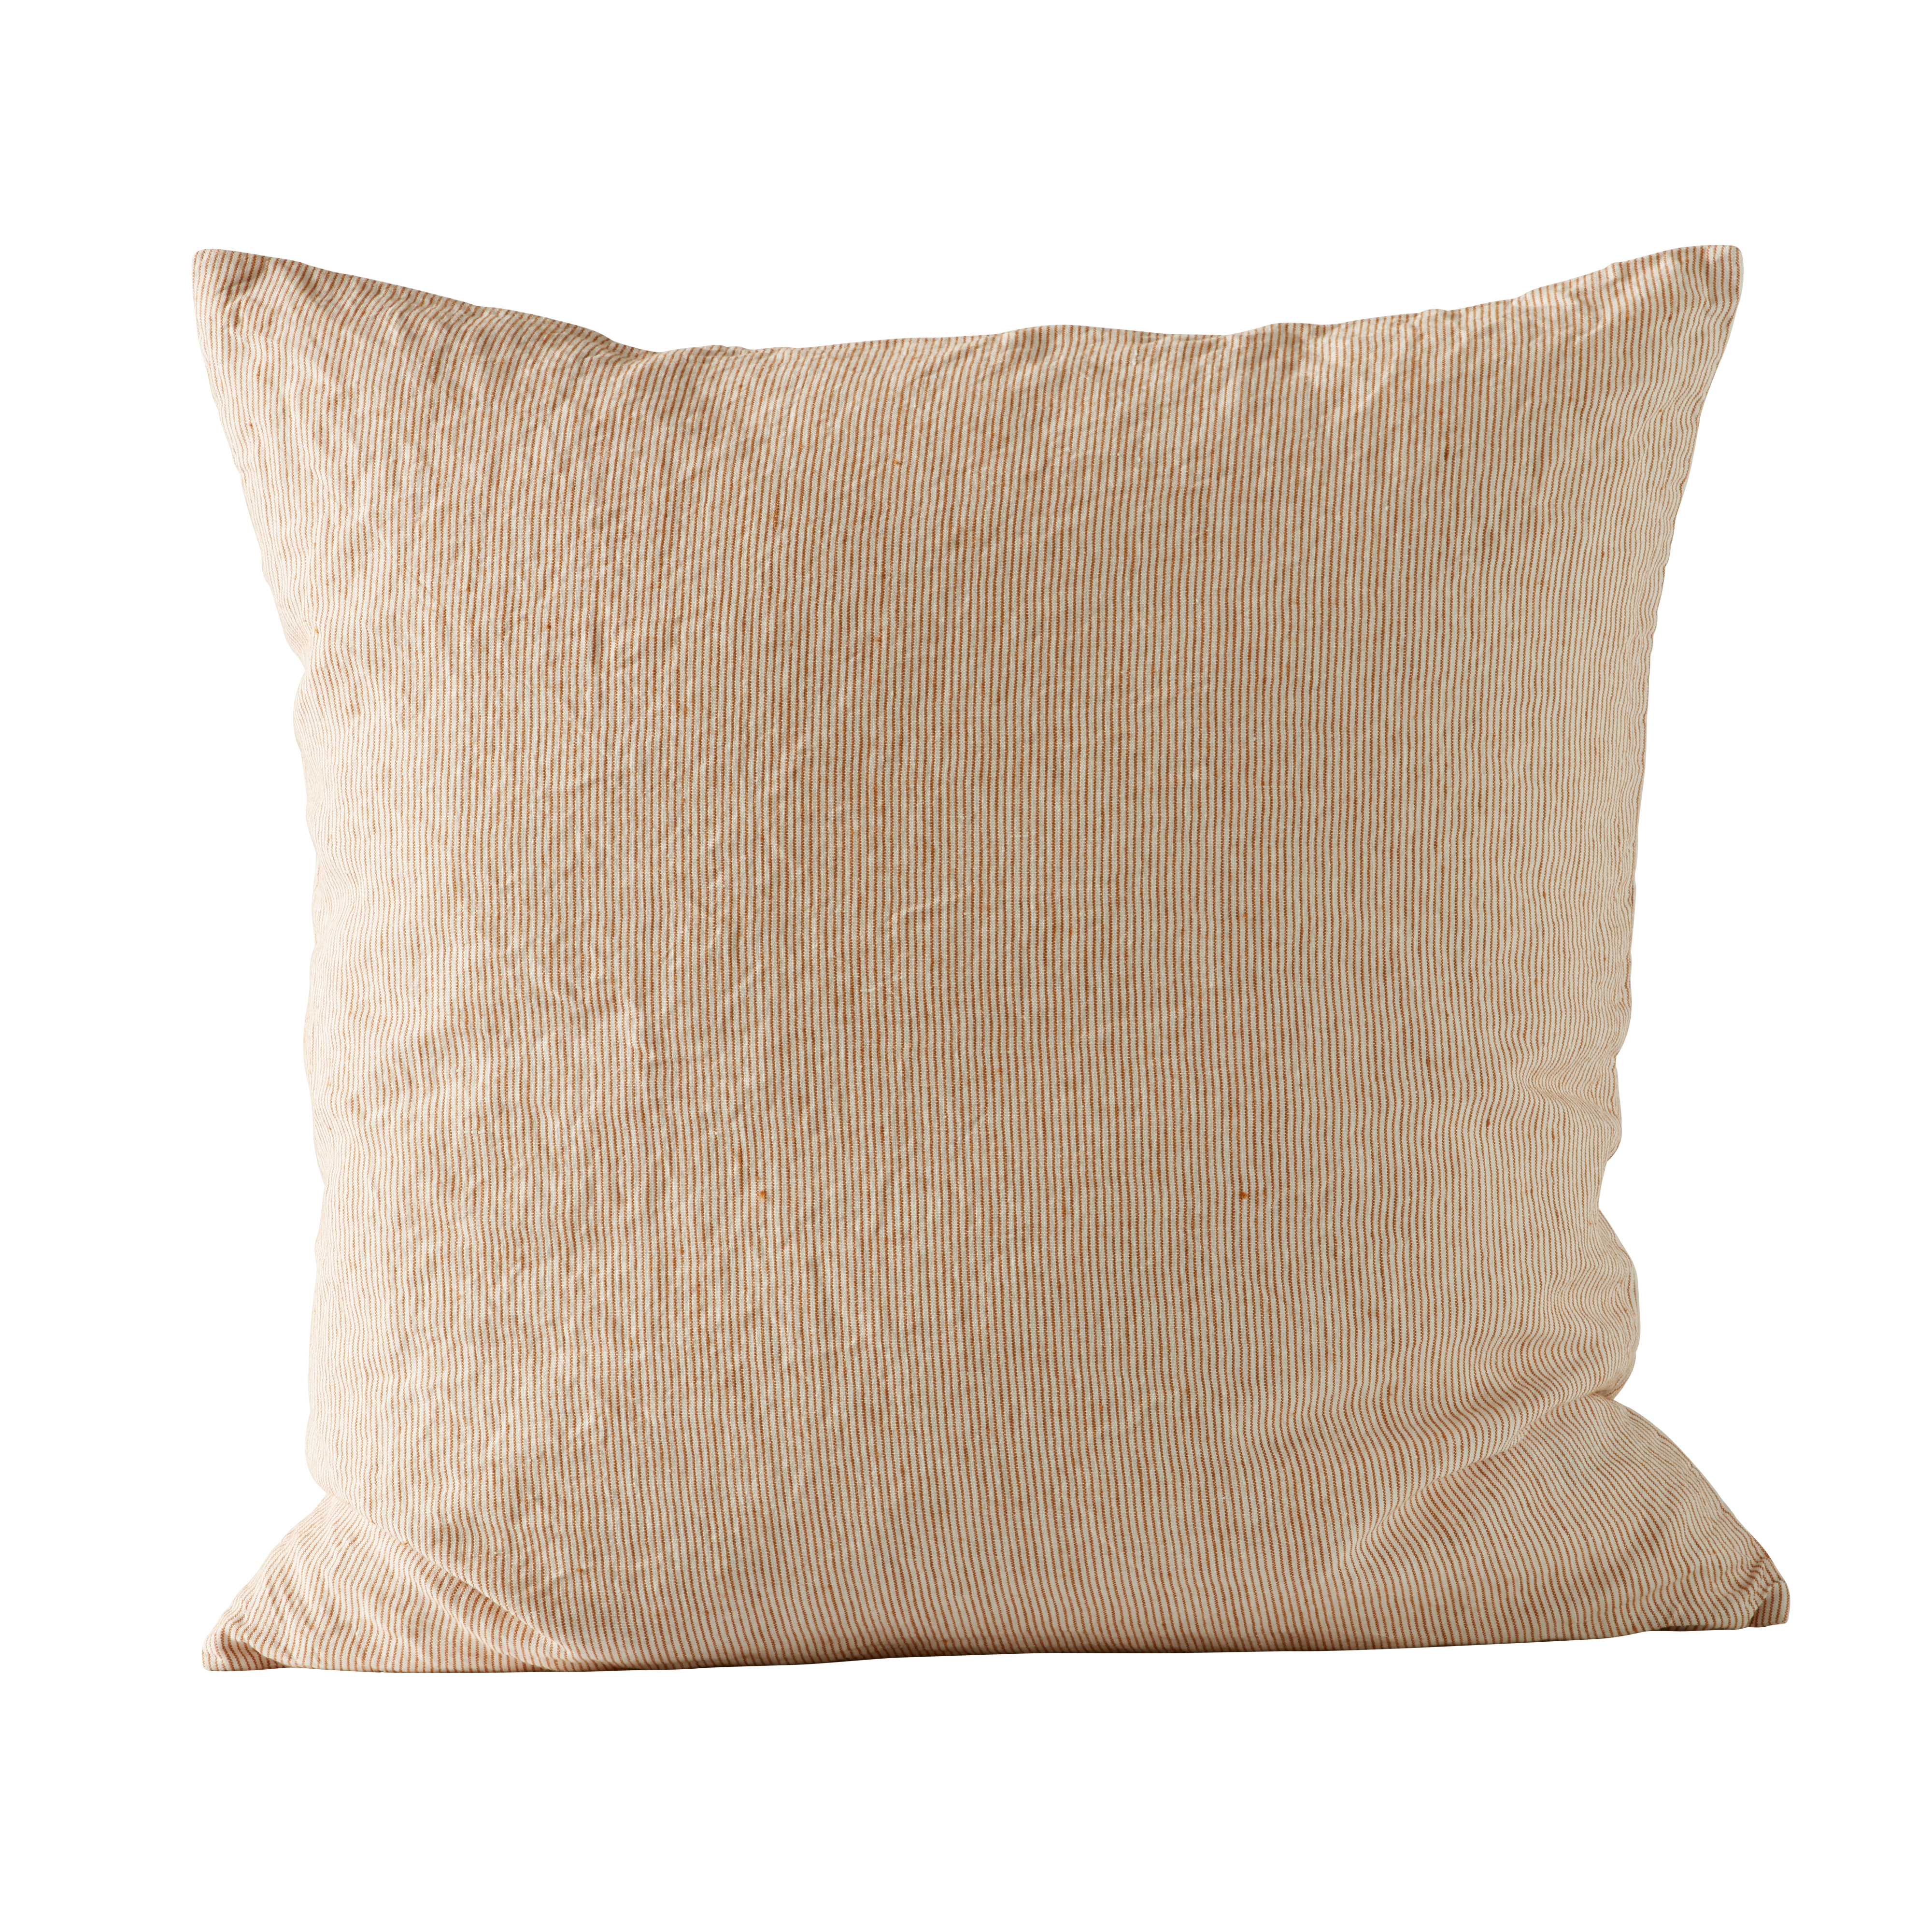 Cushion Cover In Linen 60 X 60 Cm Rust Products Tine